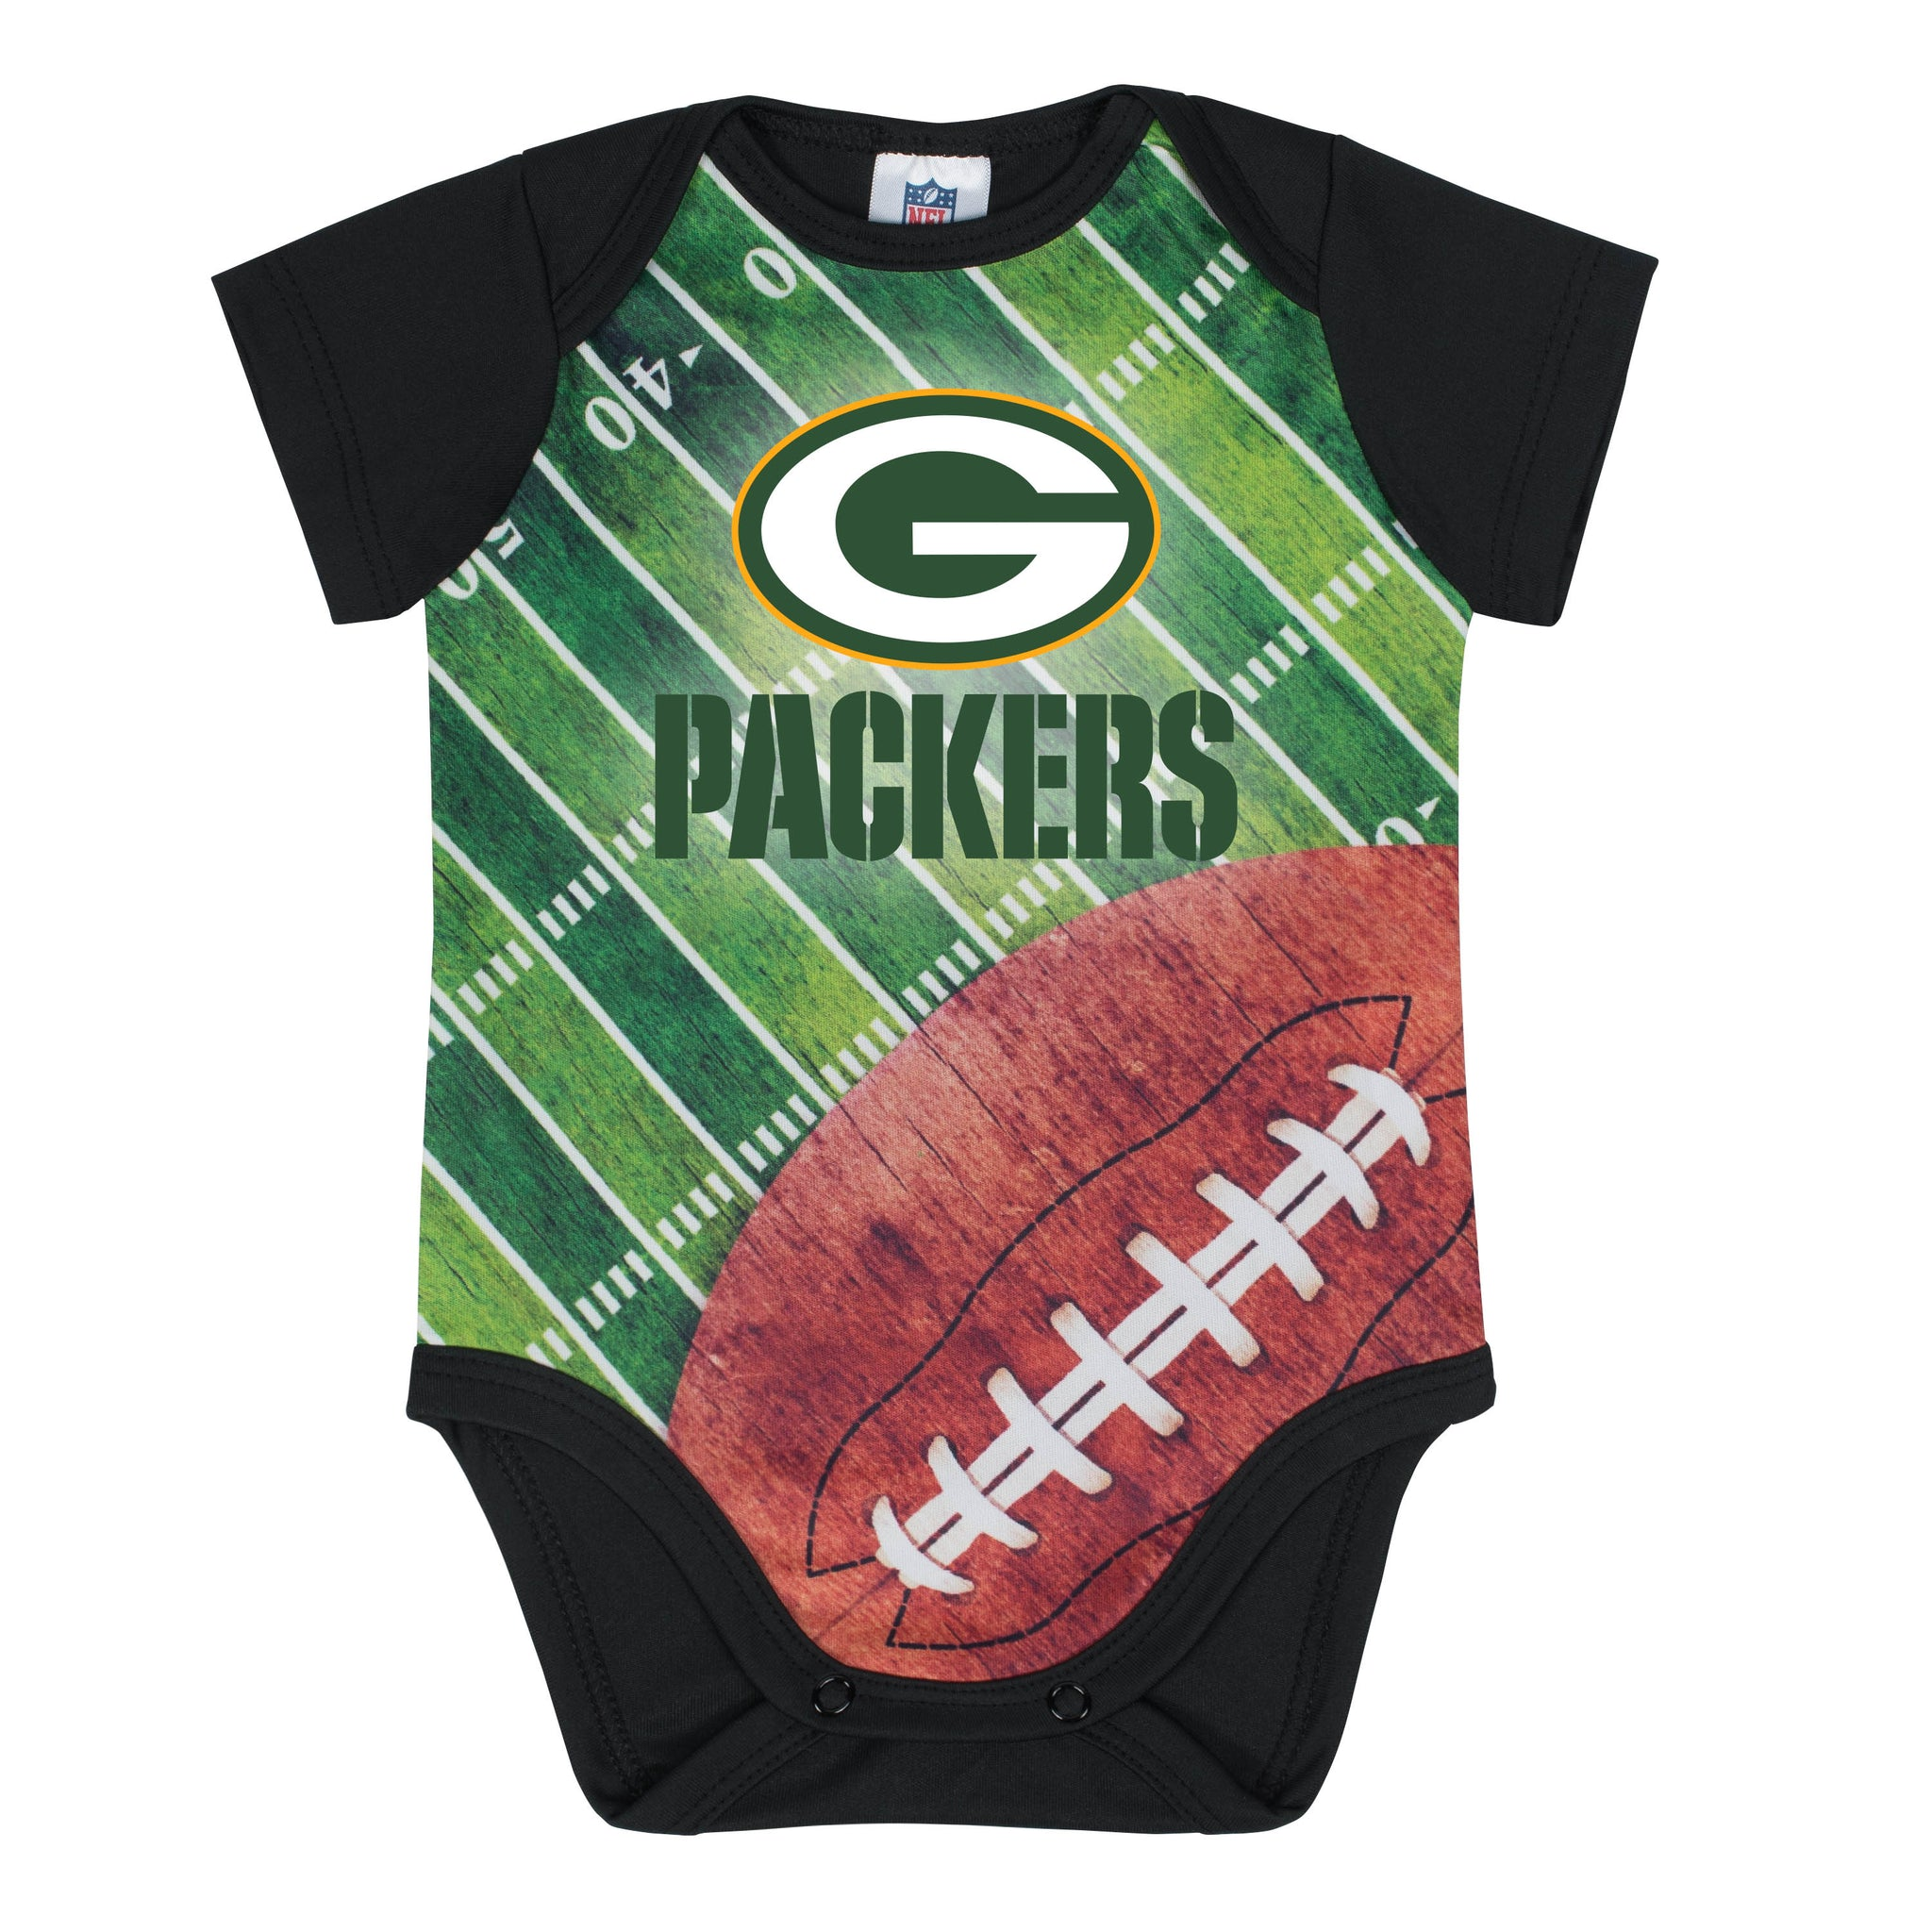 Green Bay Packers Baby Boy Short Sleeve Bodysuit-Gerber Childrenswear